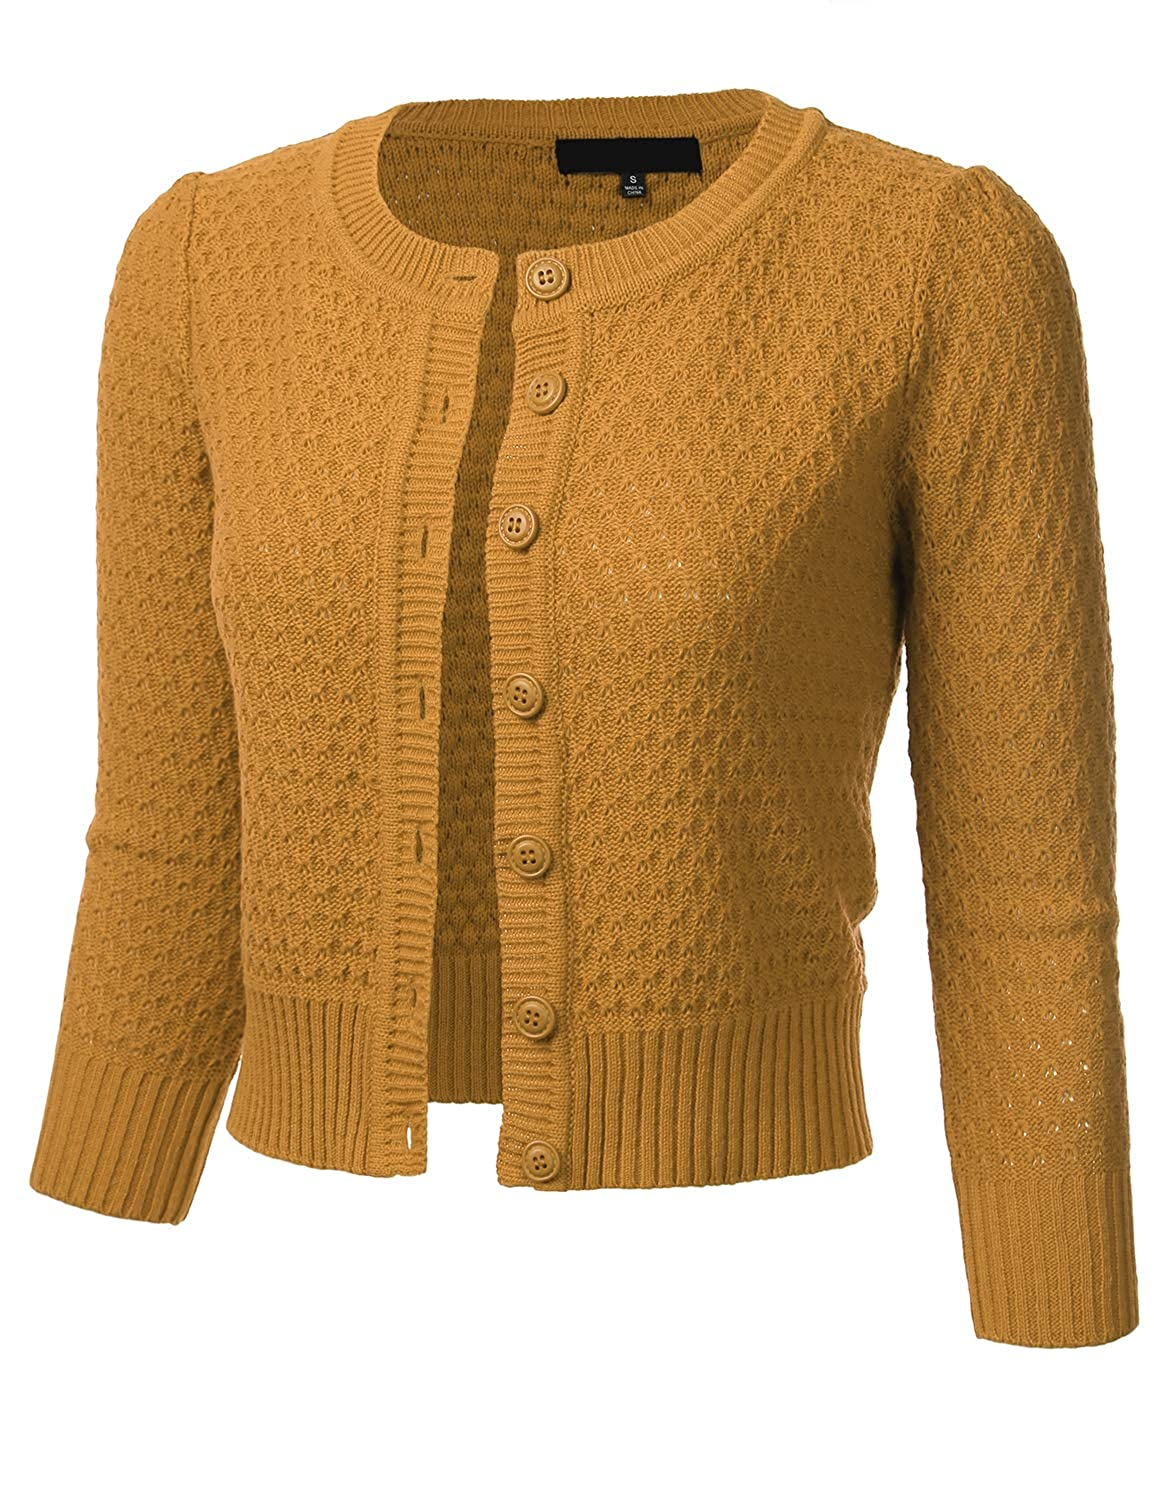 1940s Sweater Styles FLORIA Womens Button Down 3/4 Sleeve Crew Neck Cotton Knit Cropped Cardigan Sweater (S-3X) $24.99 AT vintagedancer.com